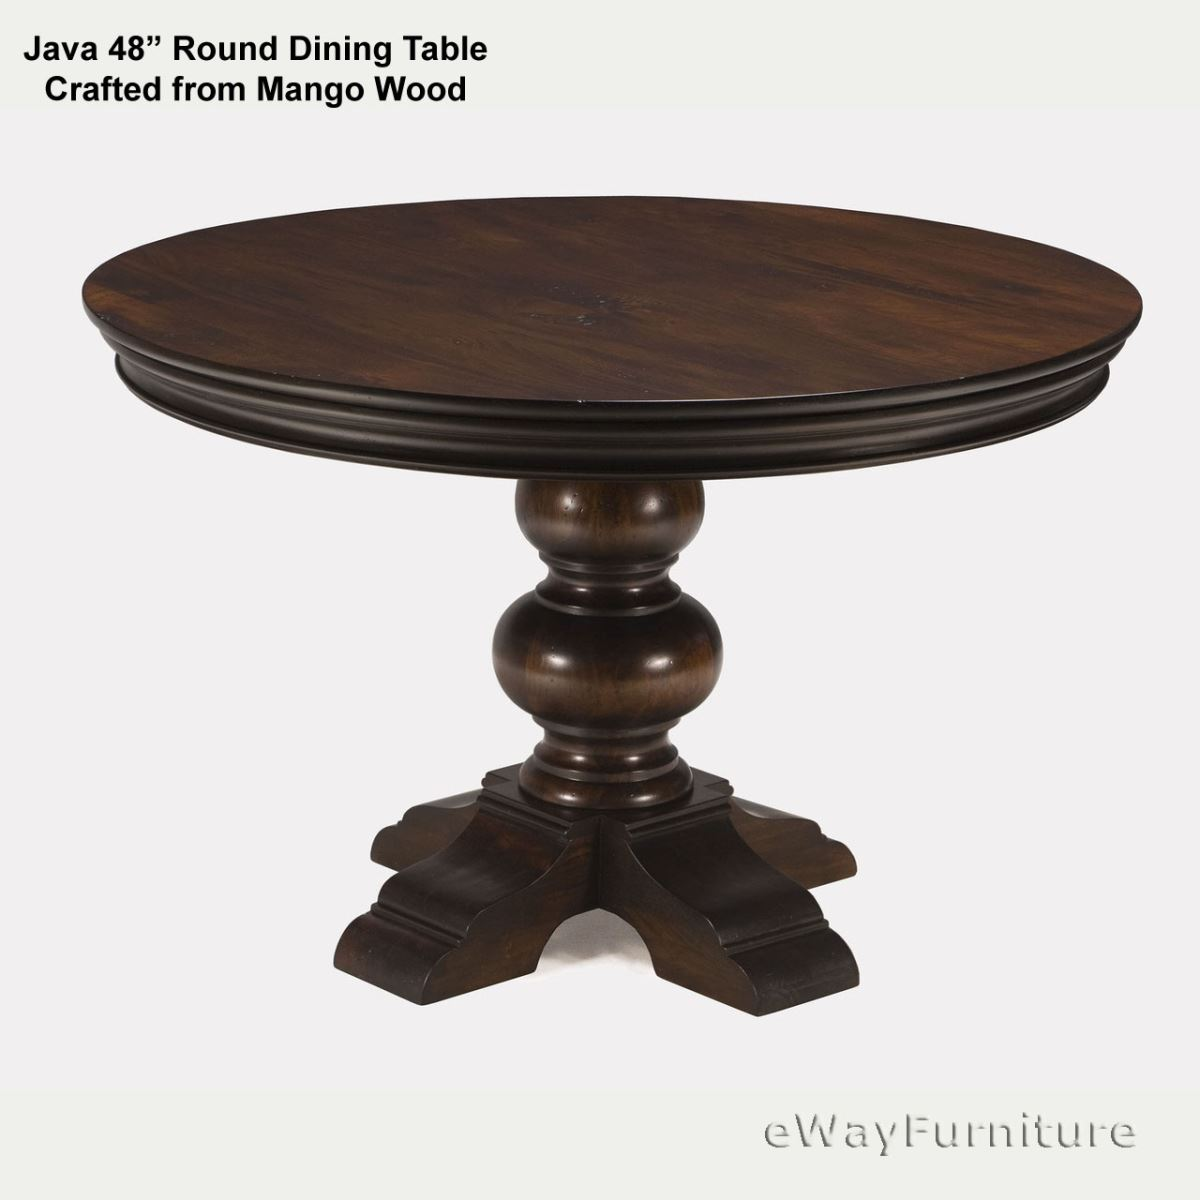 Java Round Dining Table 48 Inch